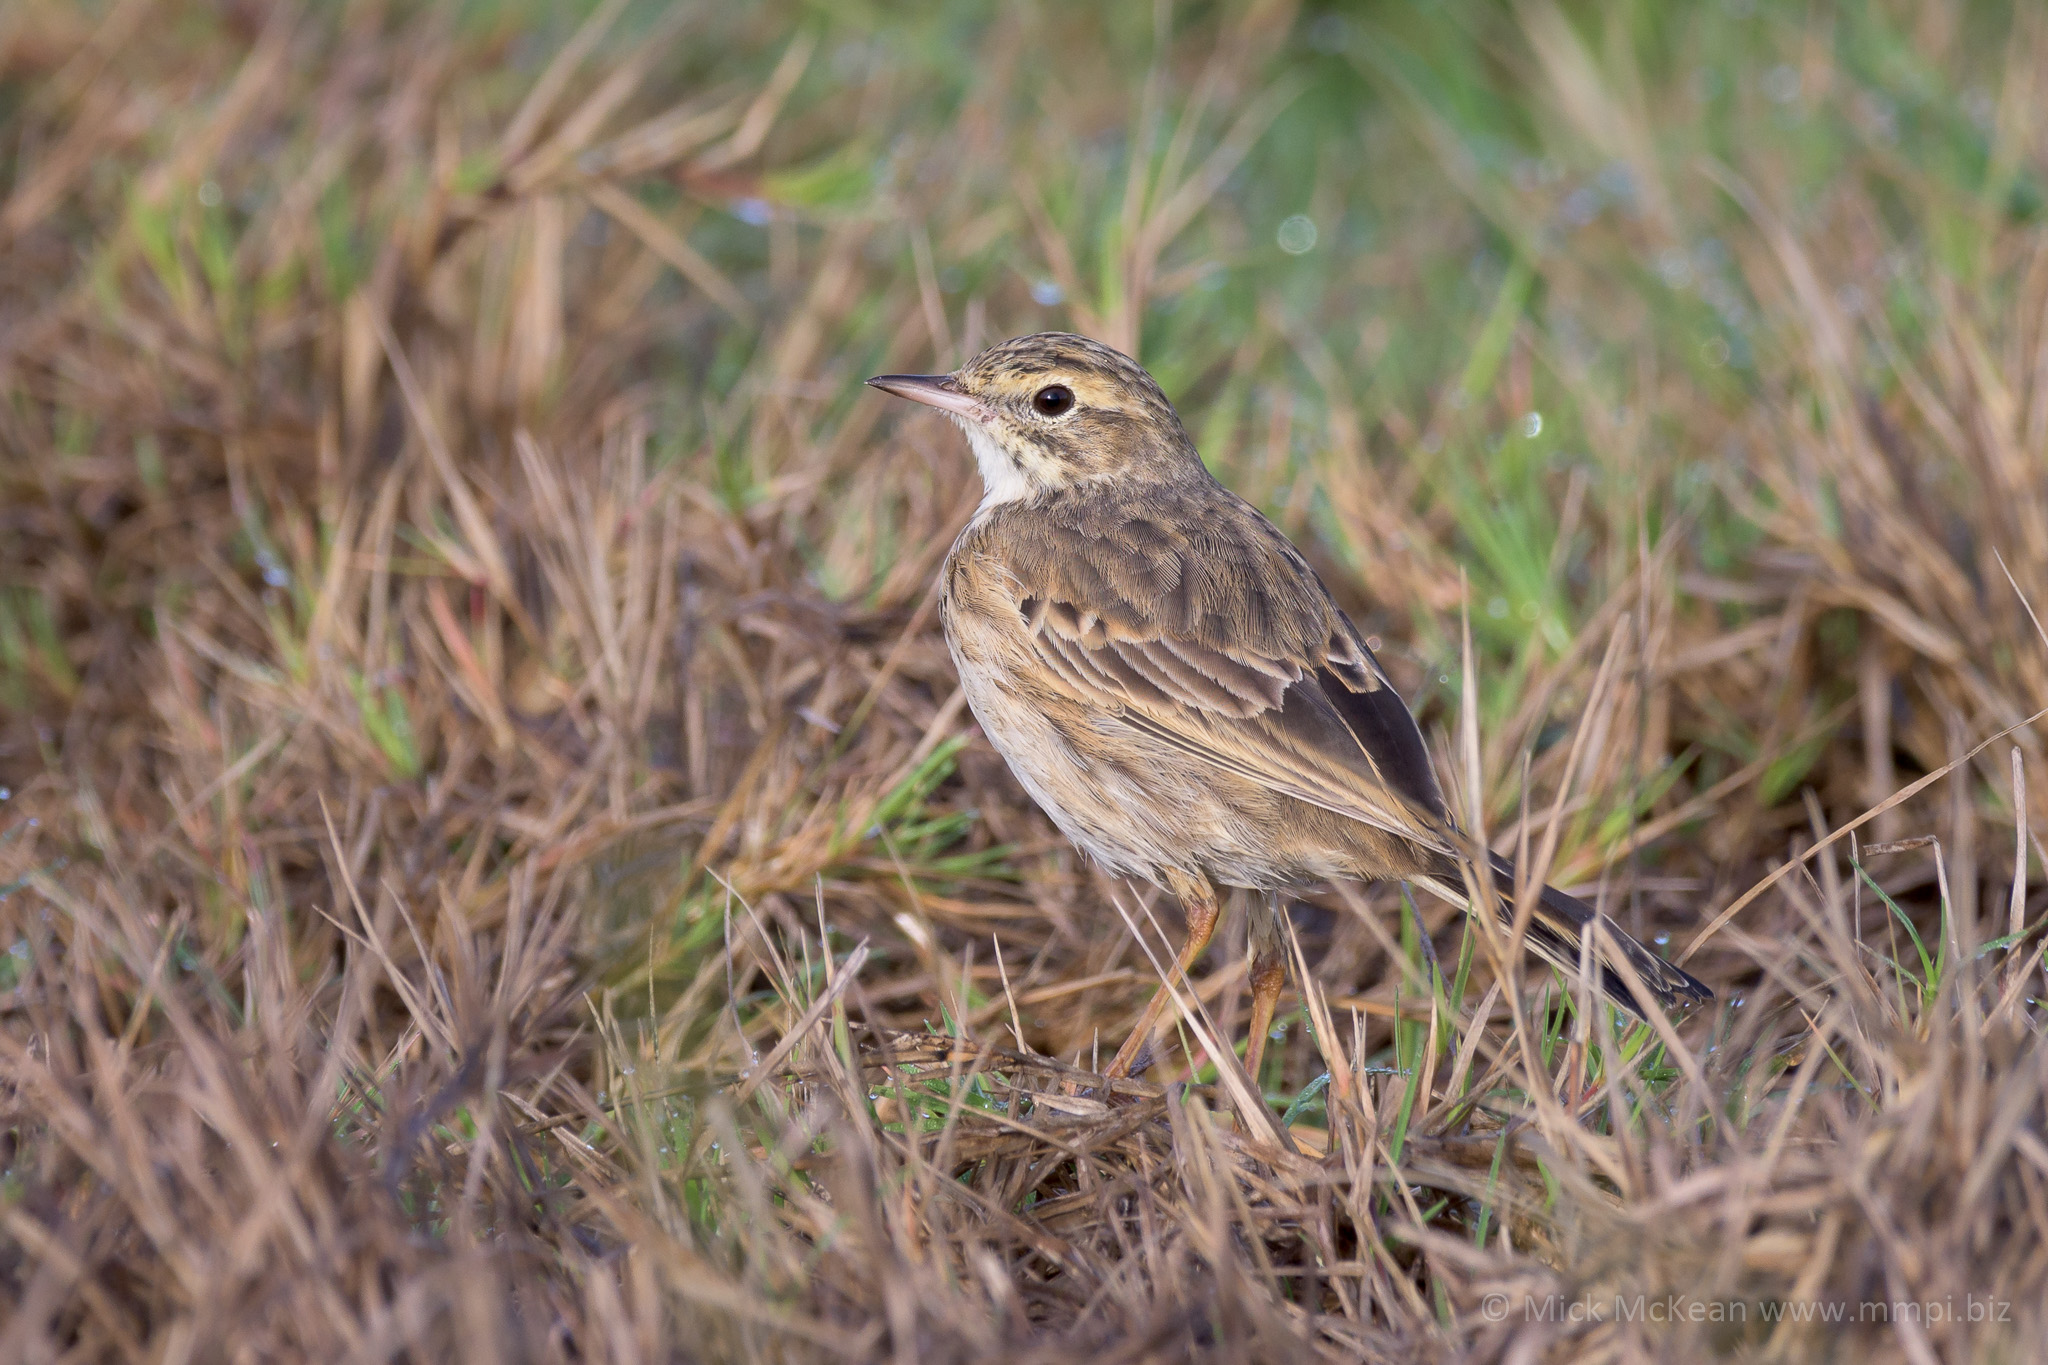 Camouflaged Australian Pipit in the Grass